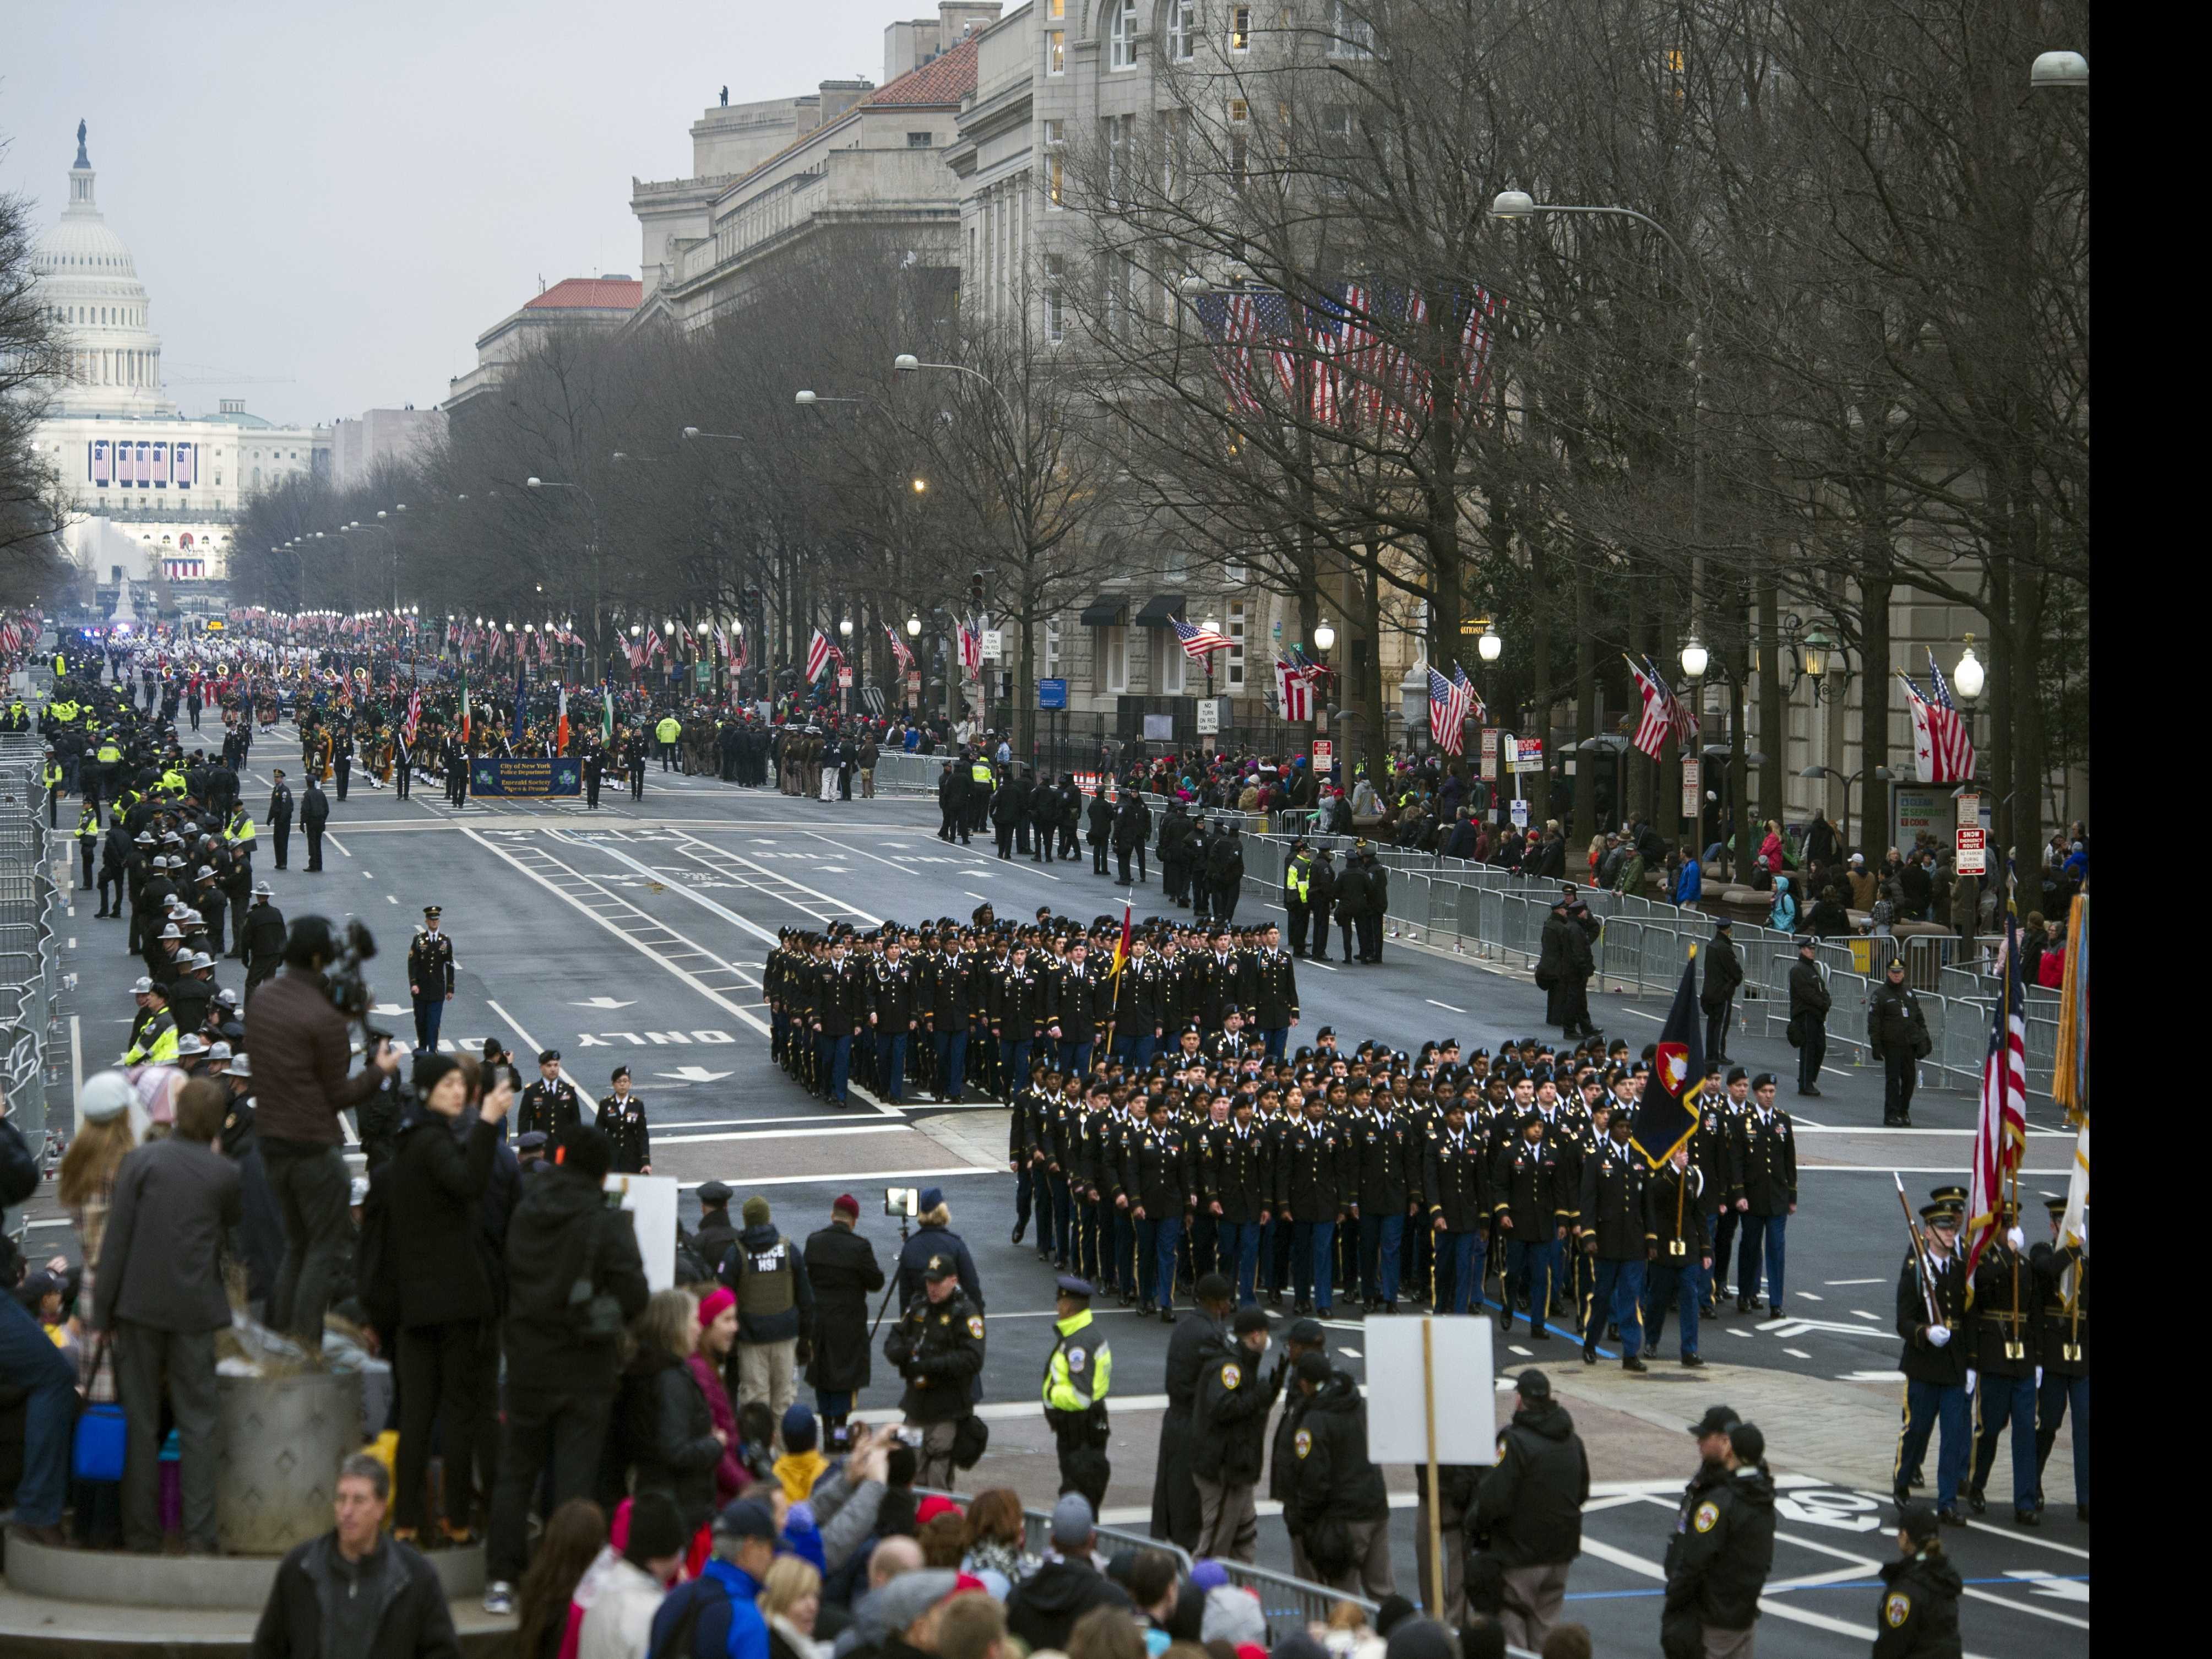 Trump Cancels $92M Parade, Cites Cost, Says Maybe Next Year